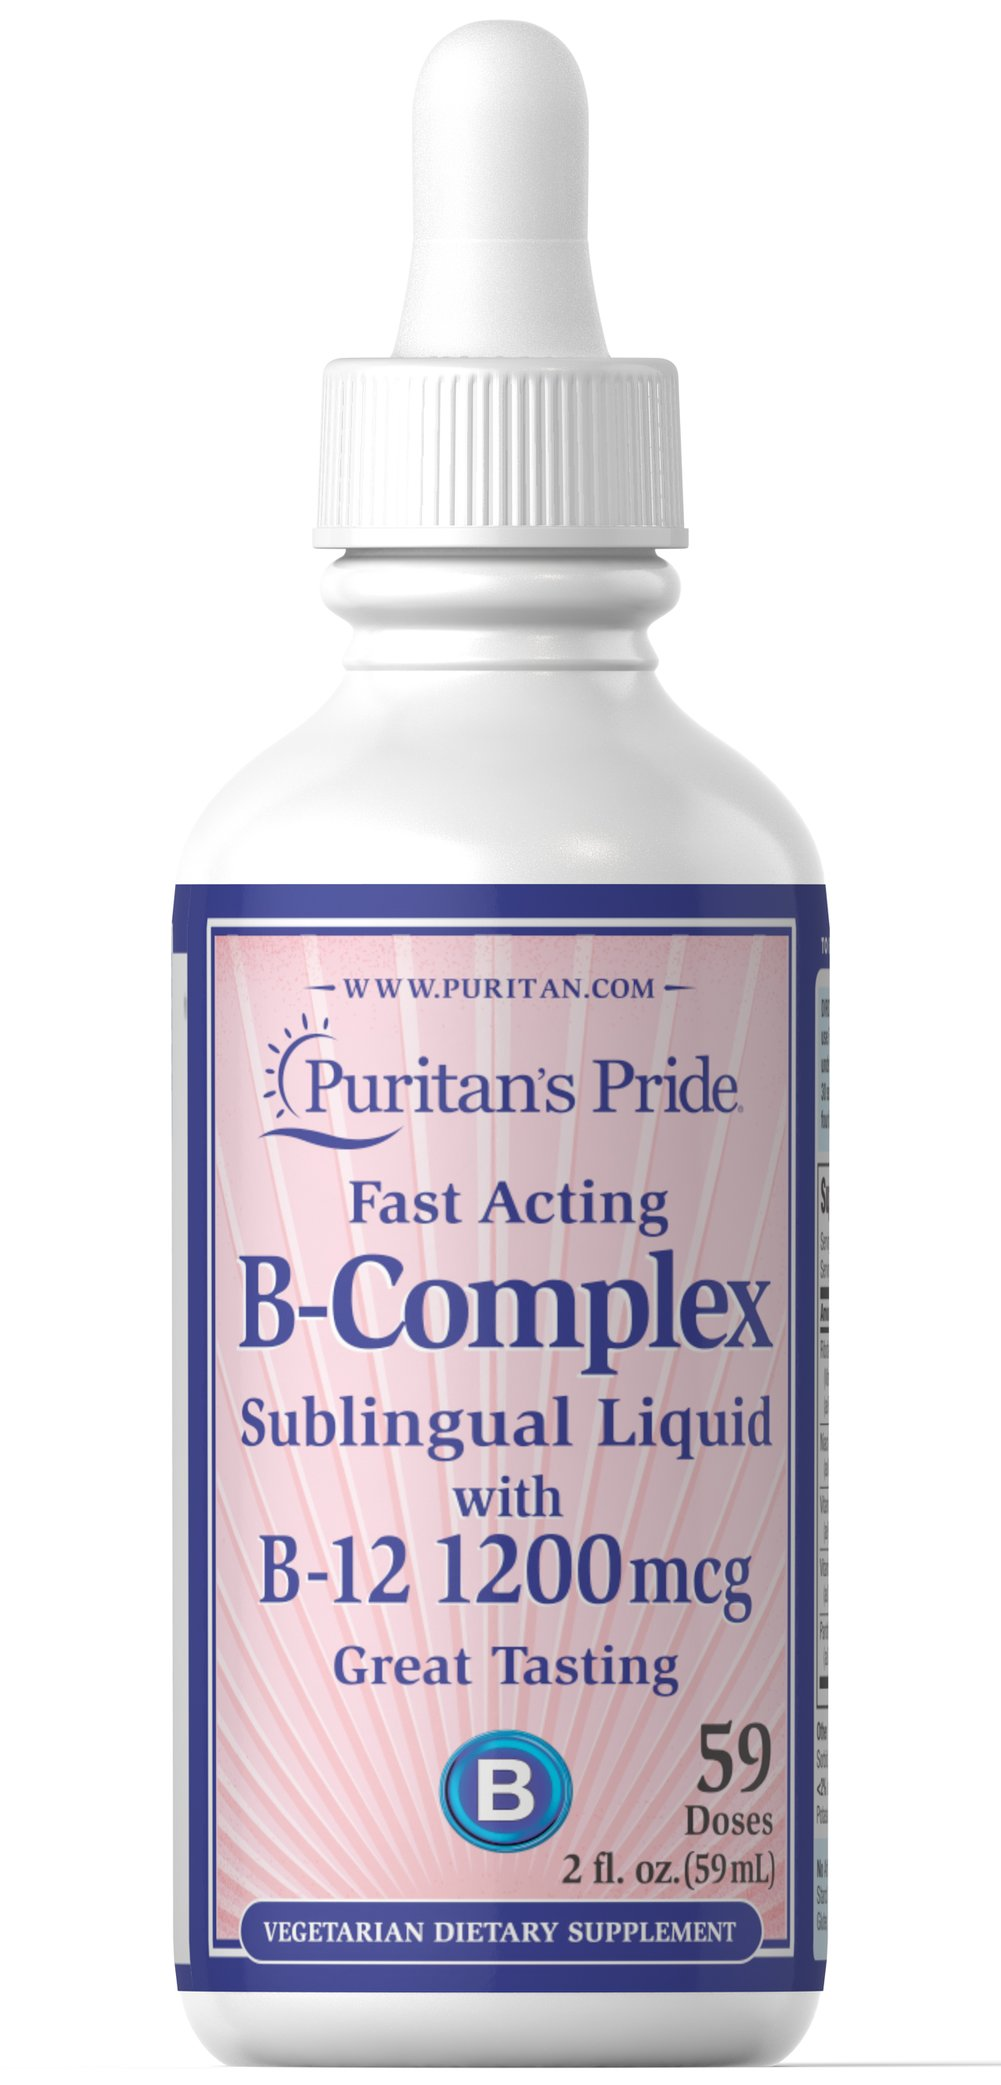 Vitamin B-Complex Sublingual Liquid with Vitamin B-12 <p>This Vitamin B-Complex Sublingual Liquid with Vitamin B-12 provides an excellent source of B-Complex vitamins to help safeguard a sufficient daily intake. The B-Complex is essential for the maintenance of healthy nervous tissue.** The B Vitamins play a role in energy metabolism in the body.** There are 59 doses per 2 fl. oz.</p> 2 fl oz Liquid  $10.99